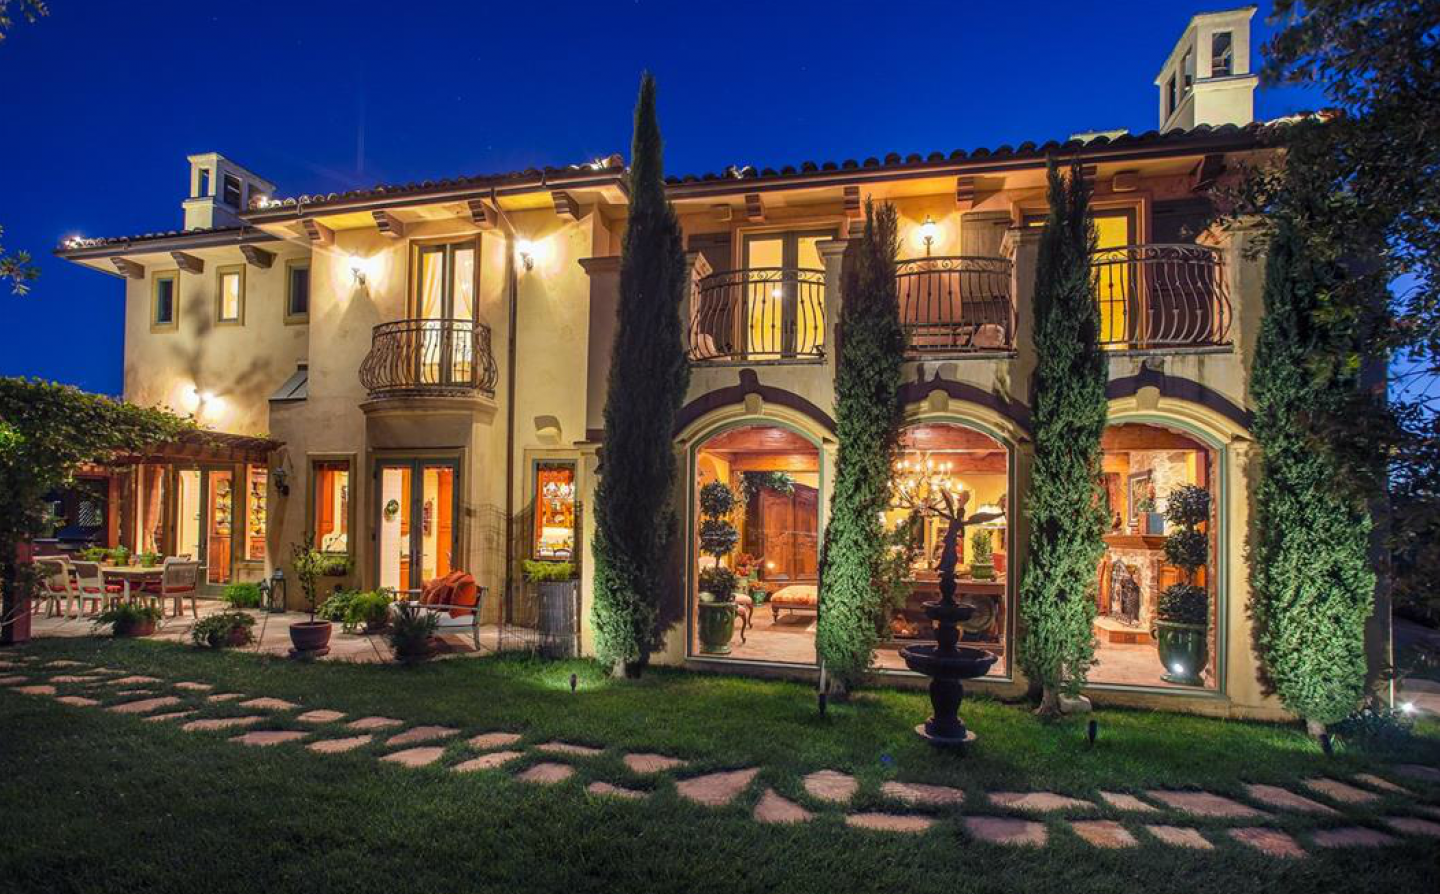 The Tuscan-style villa features five bedrooms and five-and-a-half bathrooms.